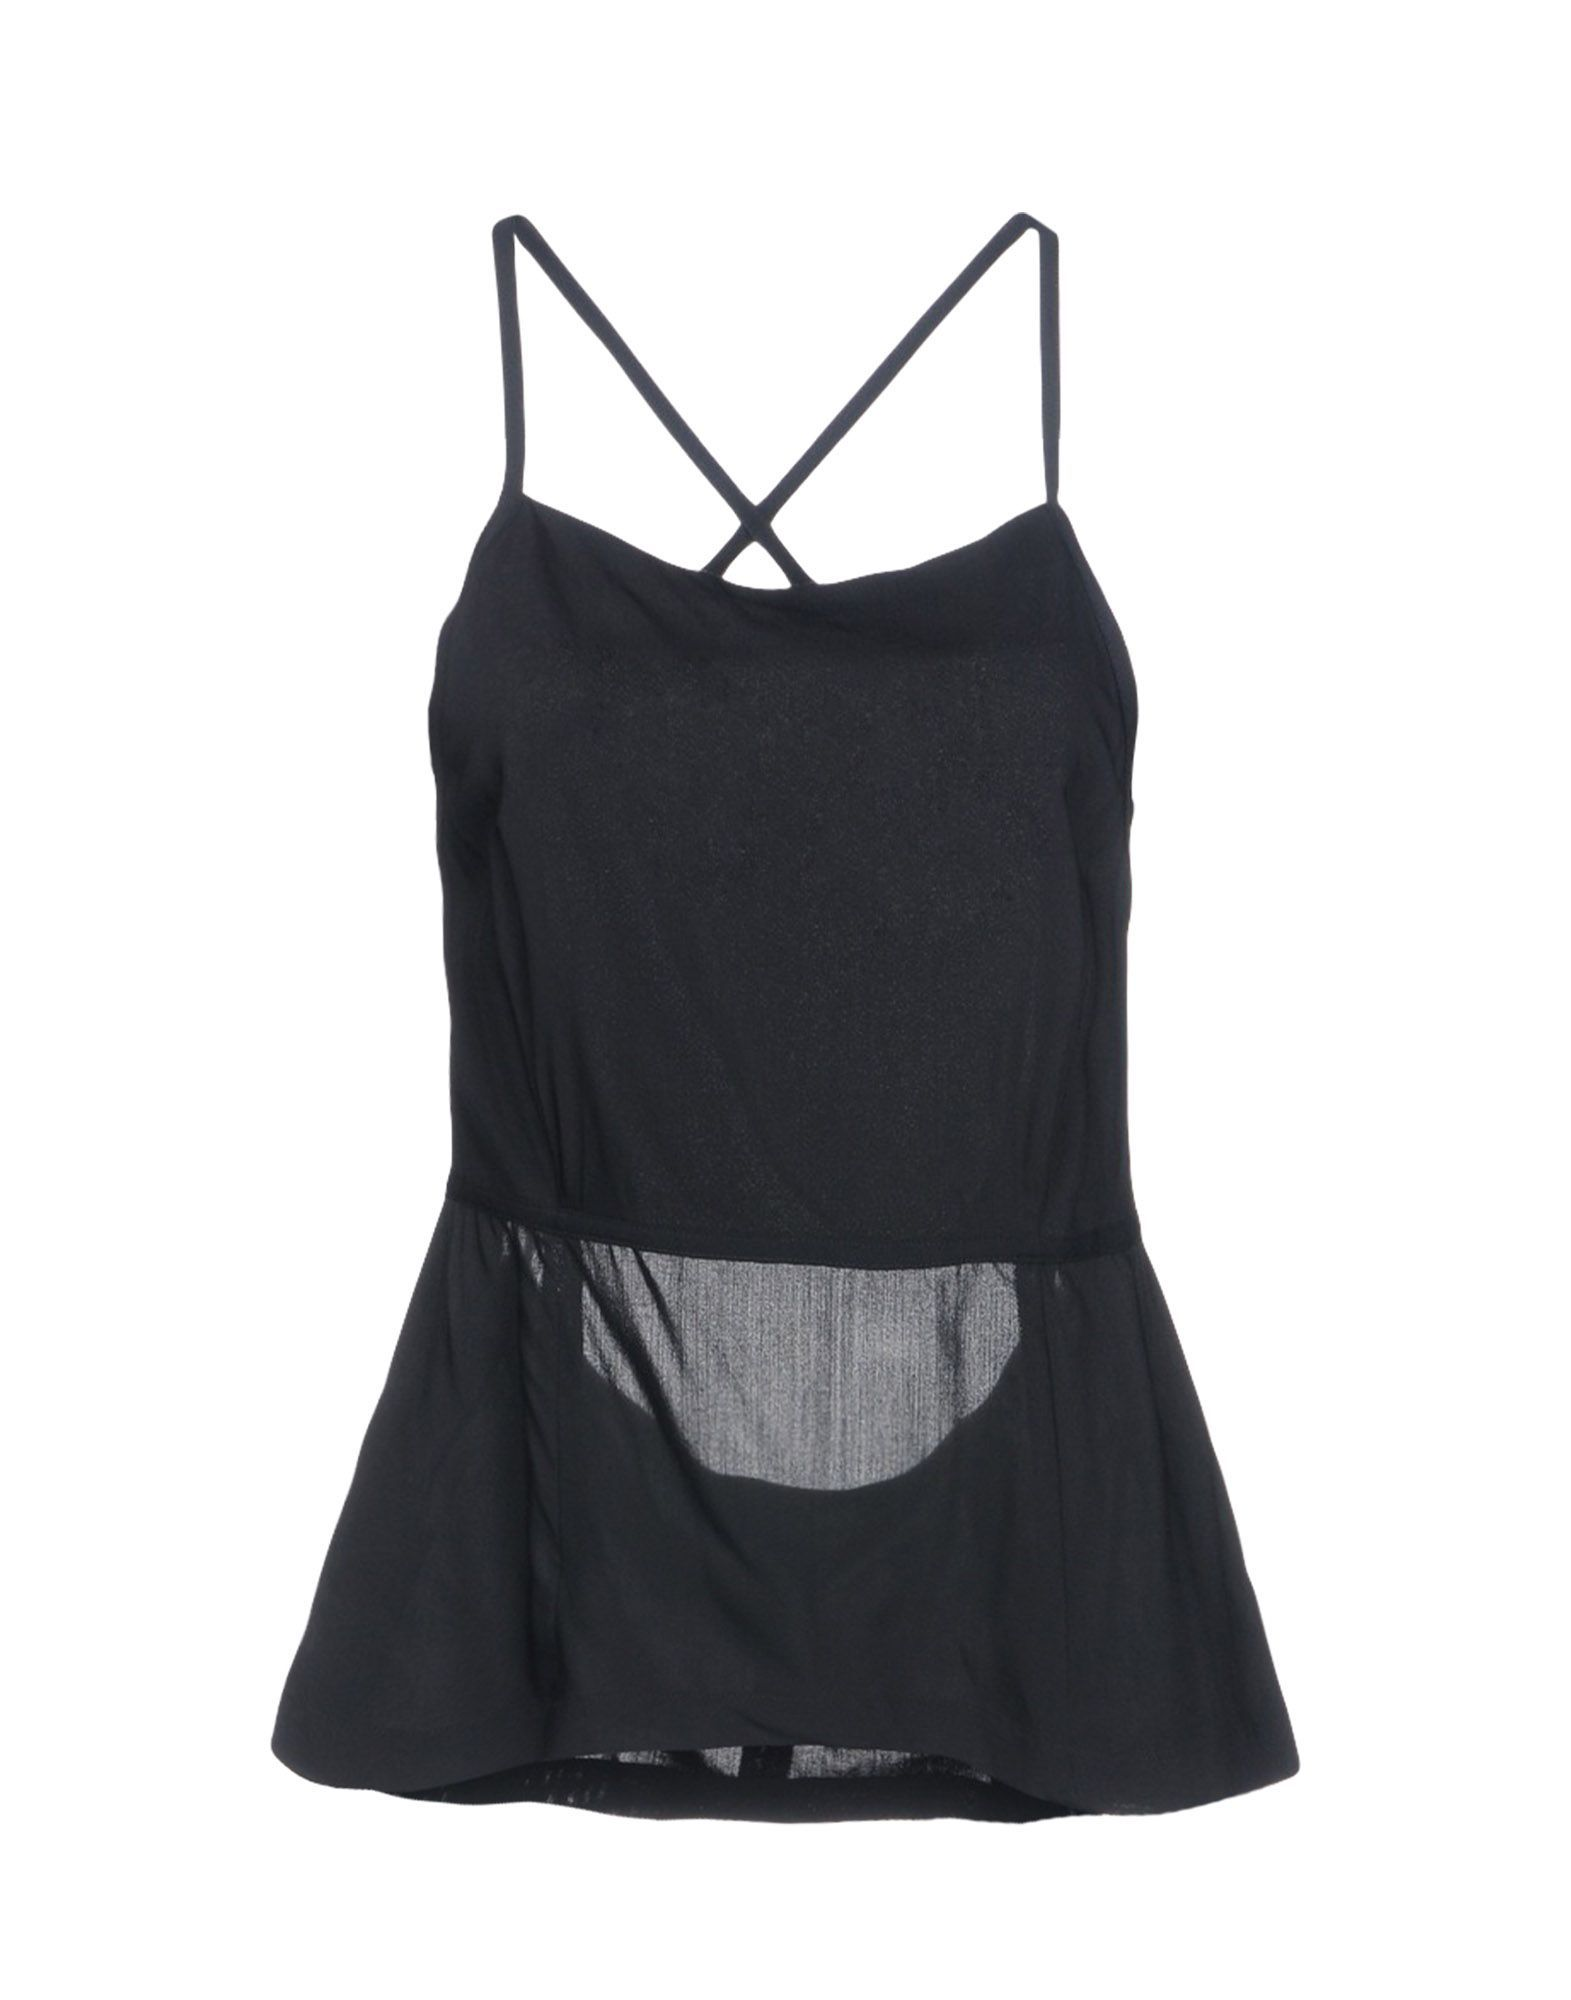 Theory Black Camisole